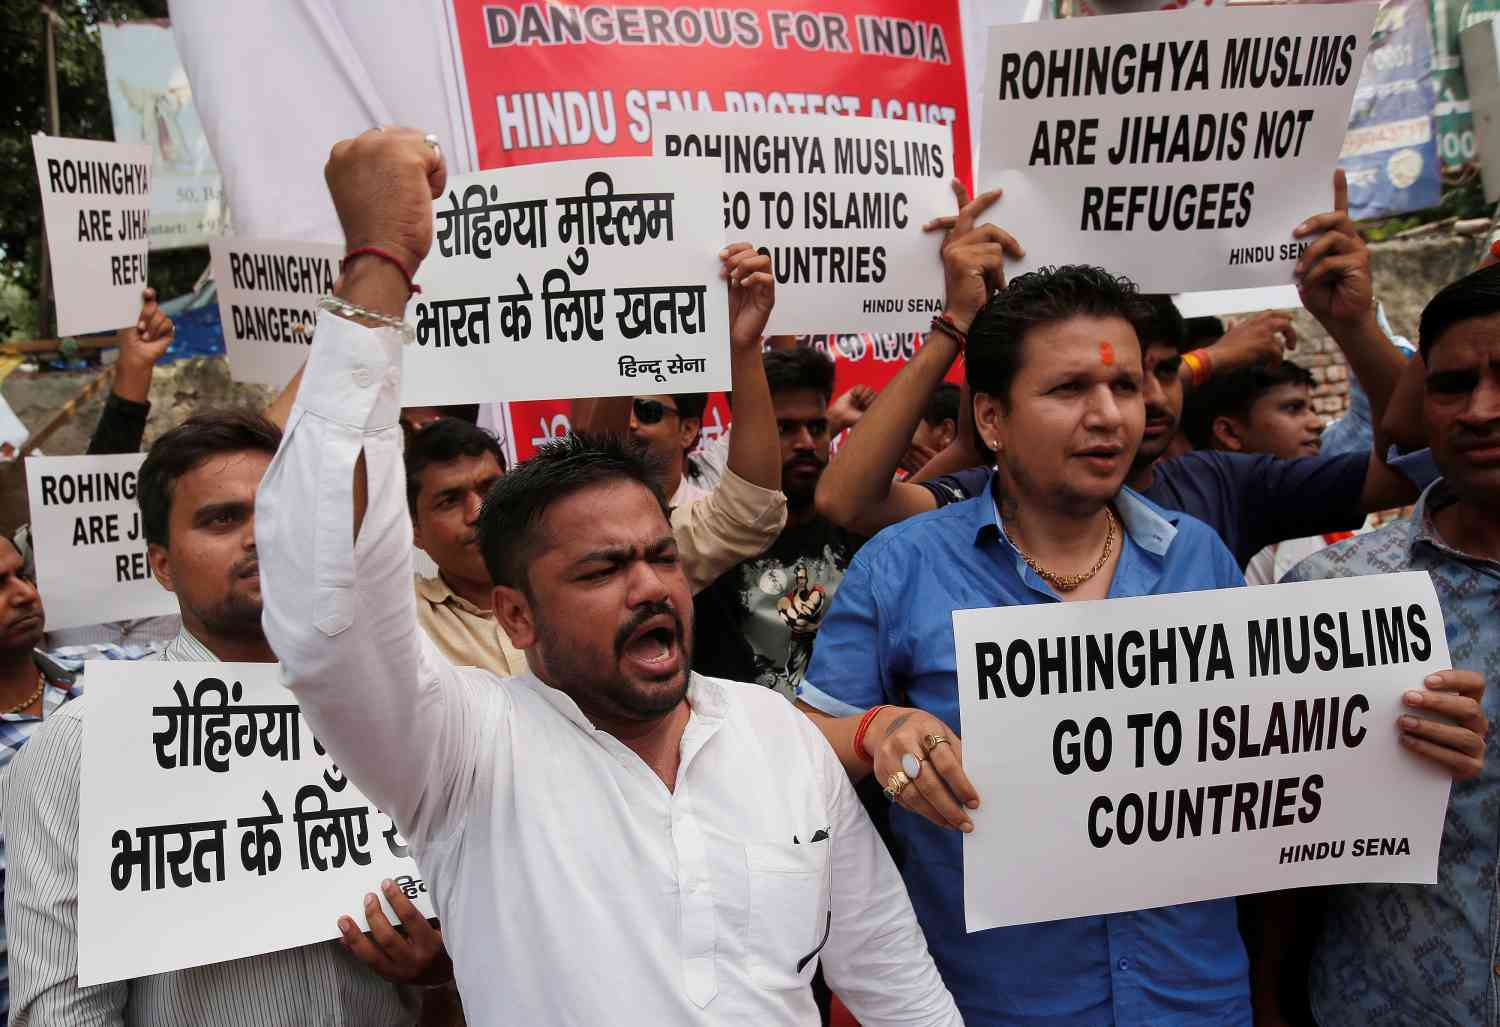 Members of the Hindu Sena shout slogans demanding the deportation of Rohingya refugees from India, in New Delhi, on September 11, 2017. (Photo credit: Reuters/Adnan Abidi).